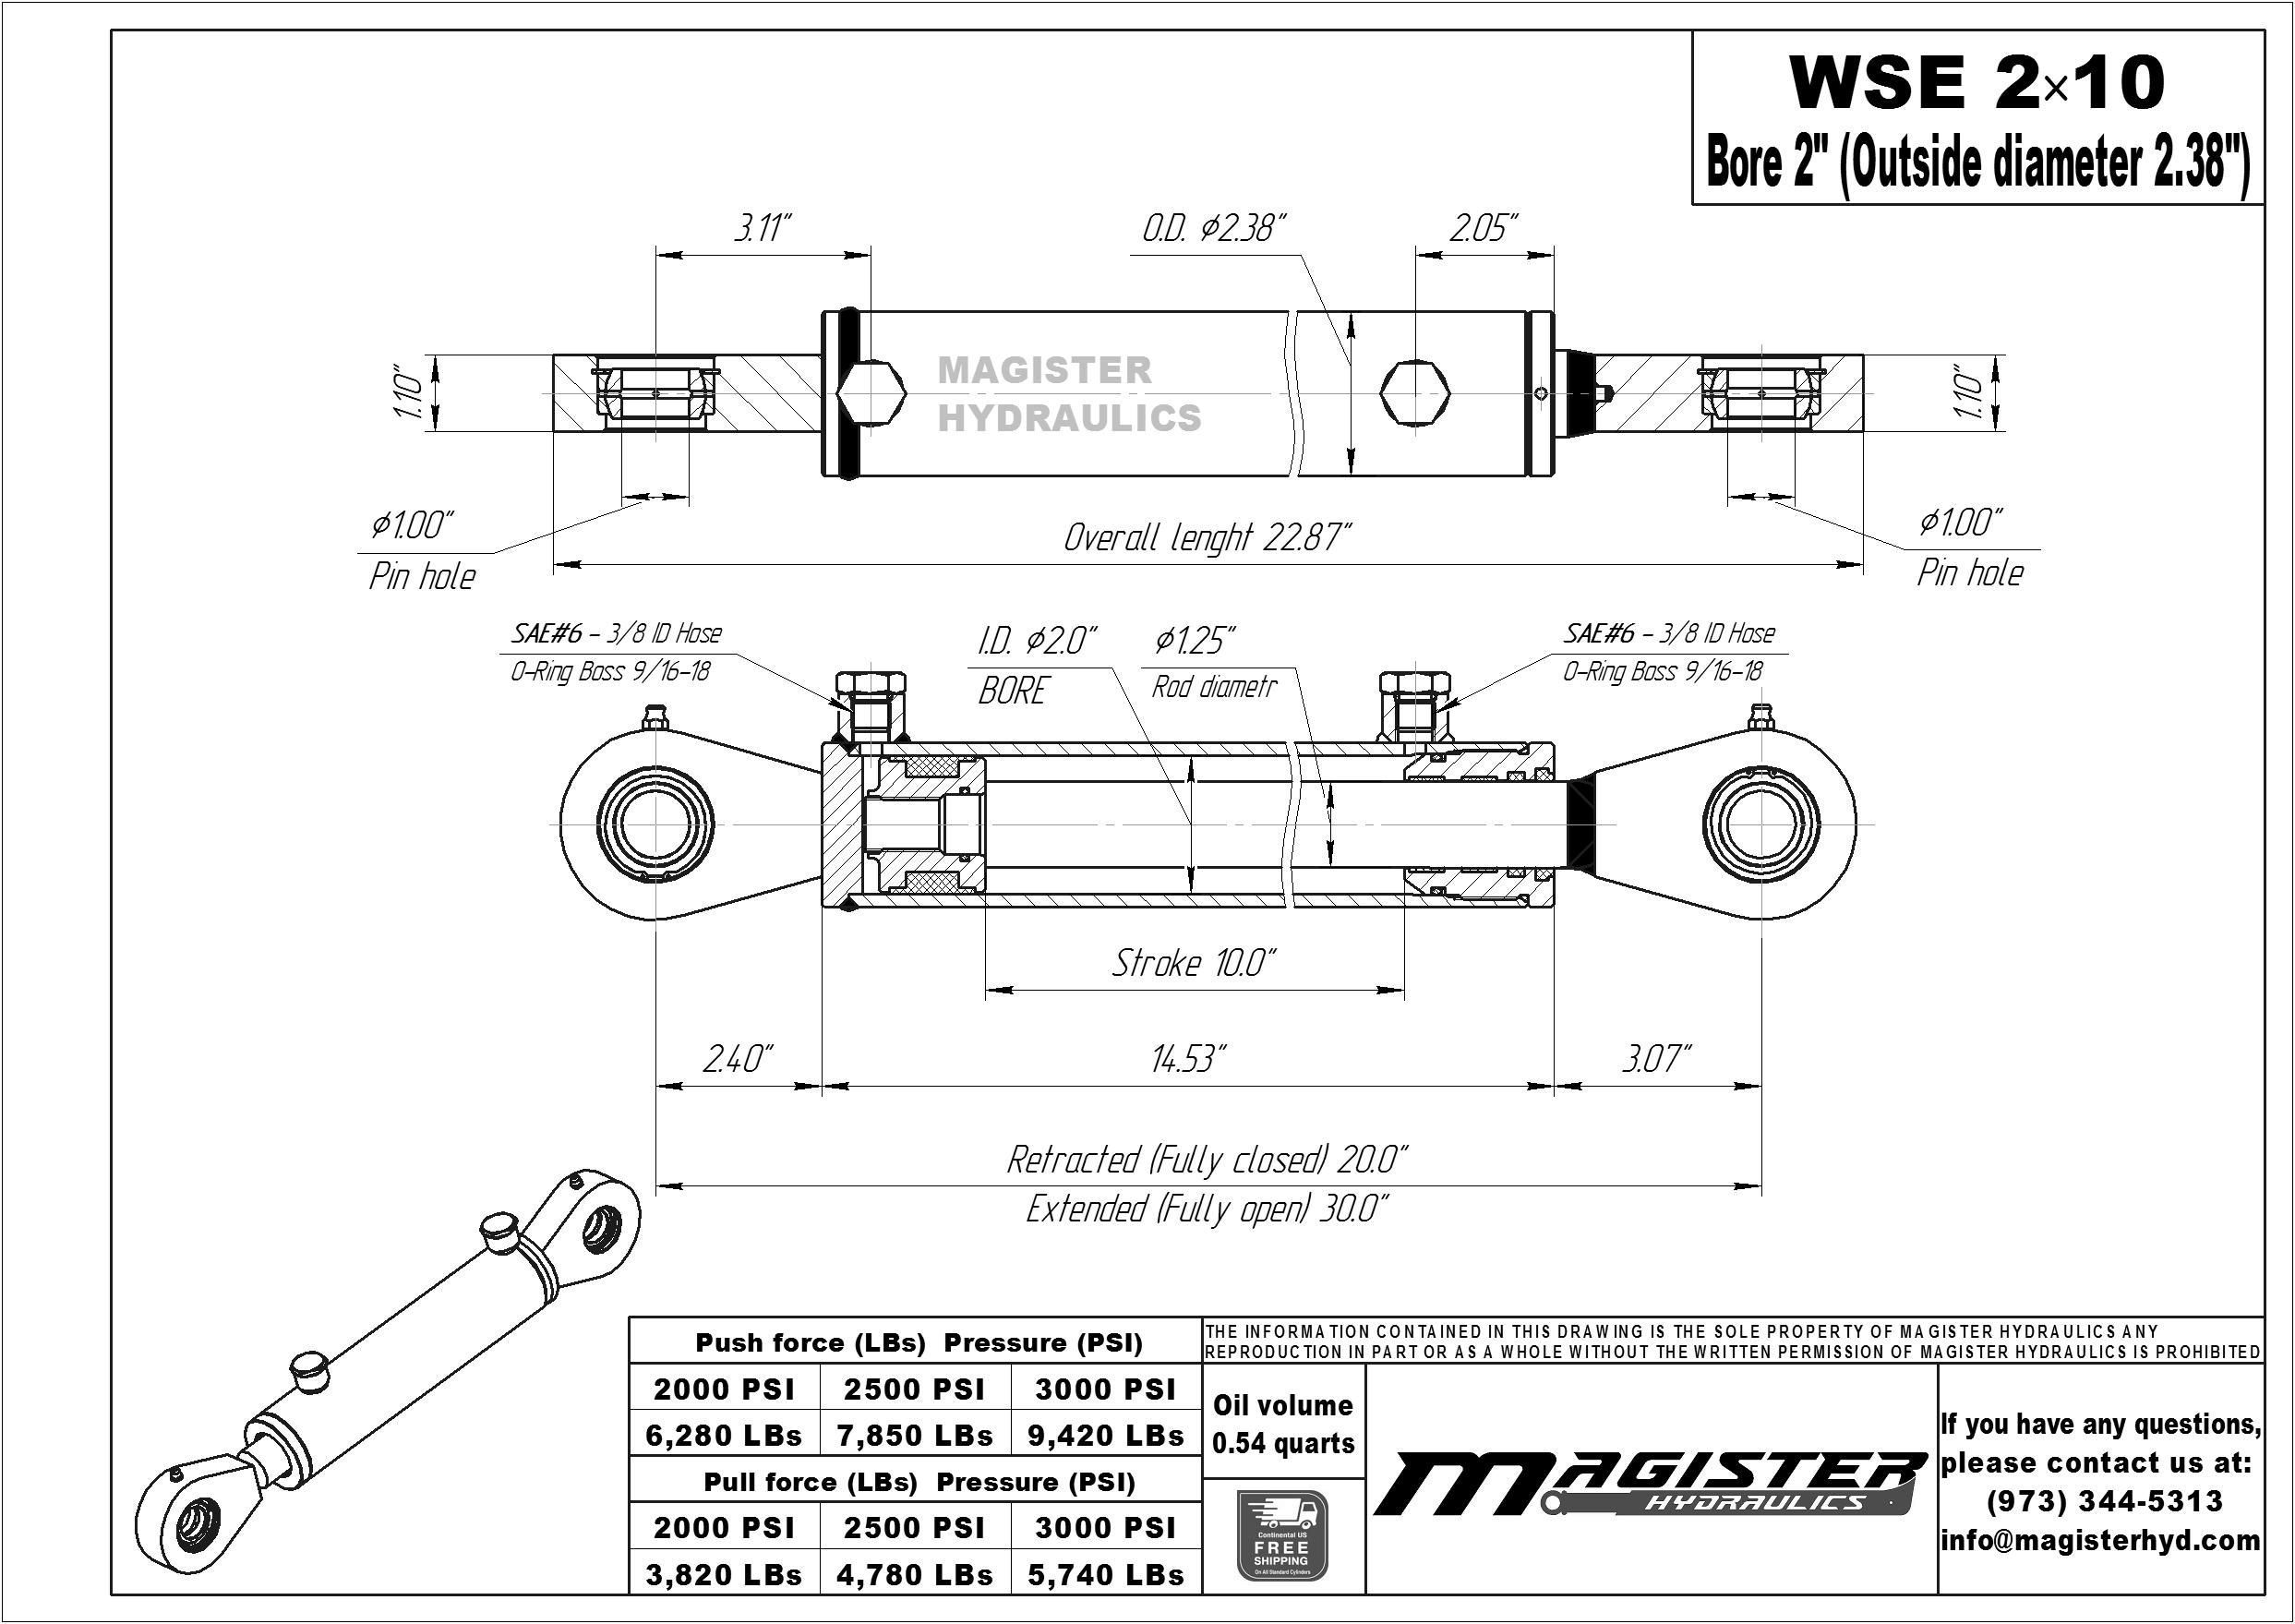 2 bore x 10 stroke hydraulic cylinder, welded swivel eye double acting cylinder | Magister Hydraulics